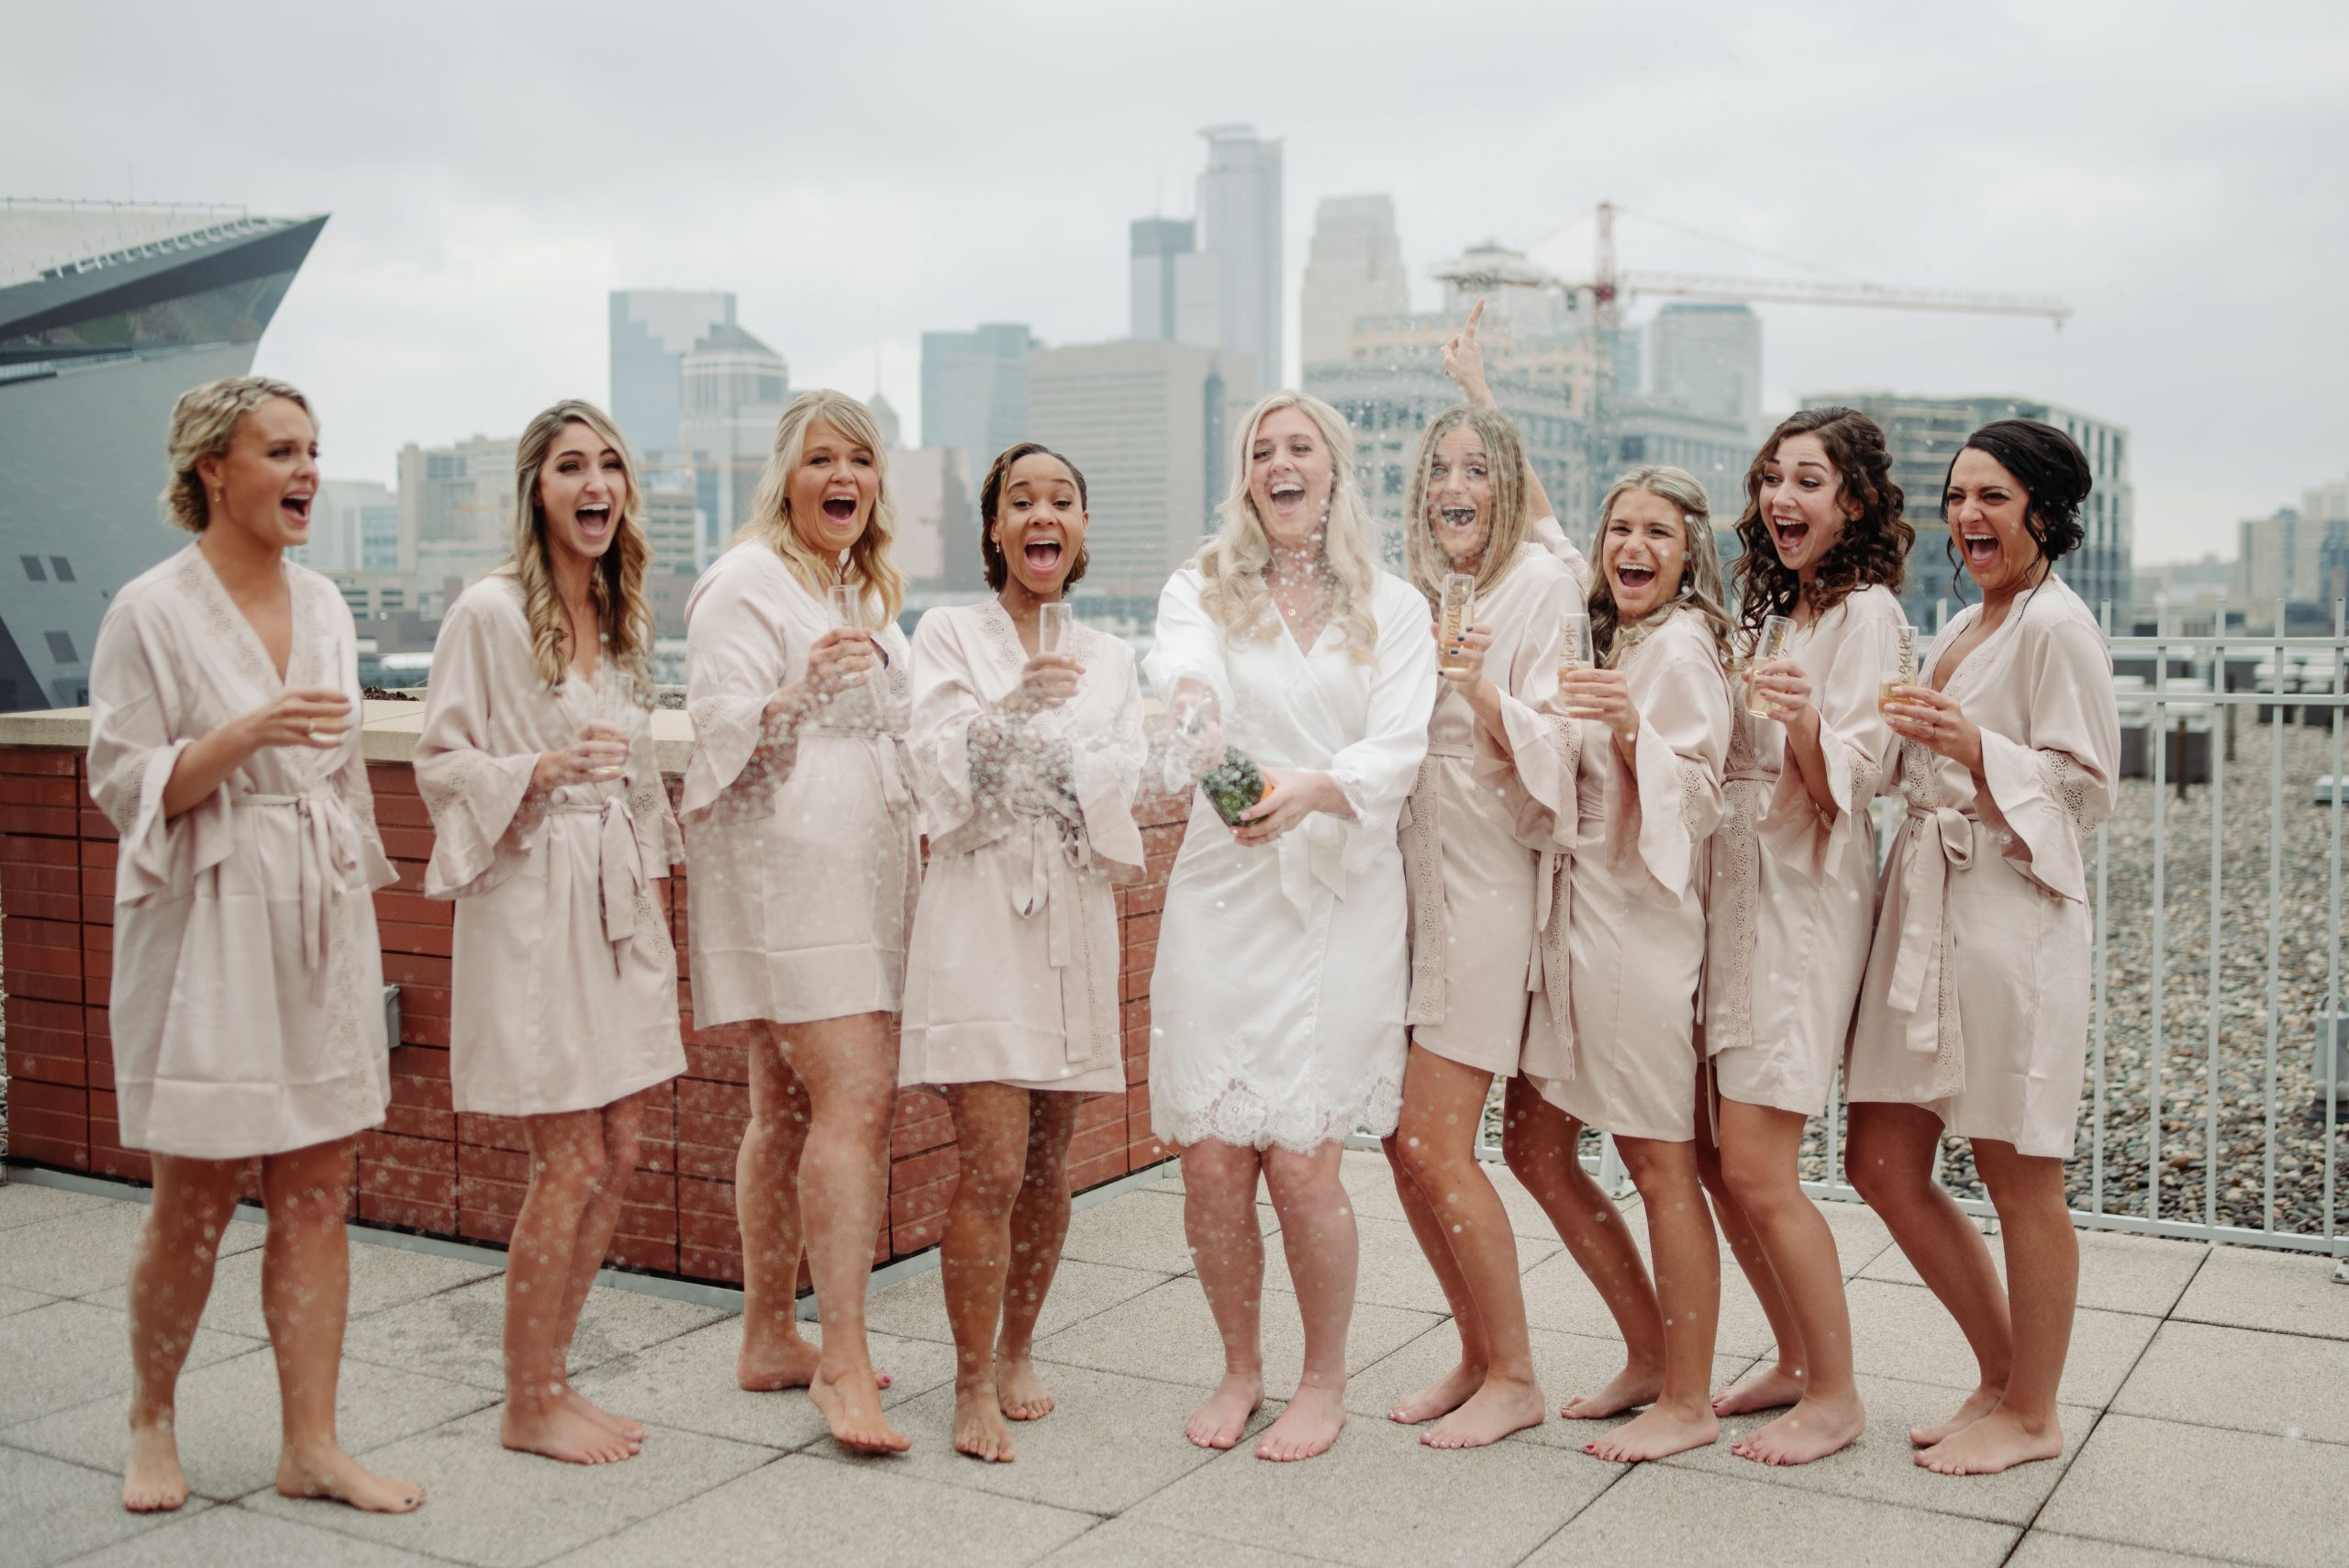 bridal party getting ready popping champagne on a rooftop minneapolis minnesota